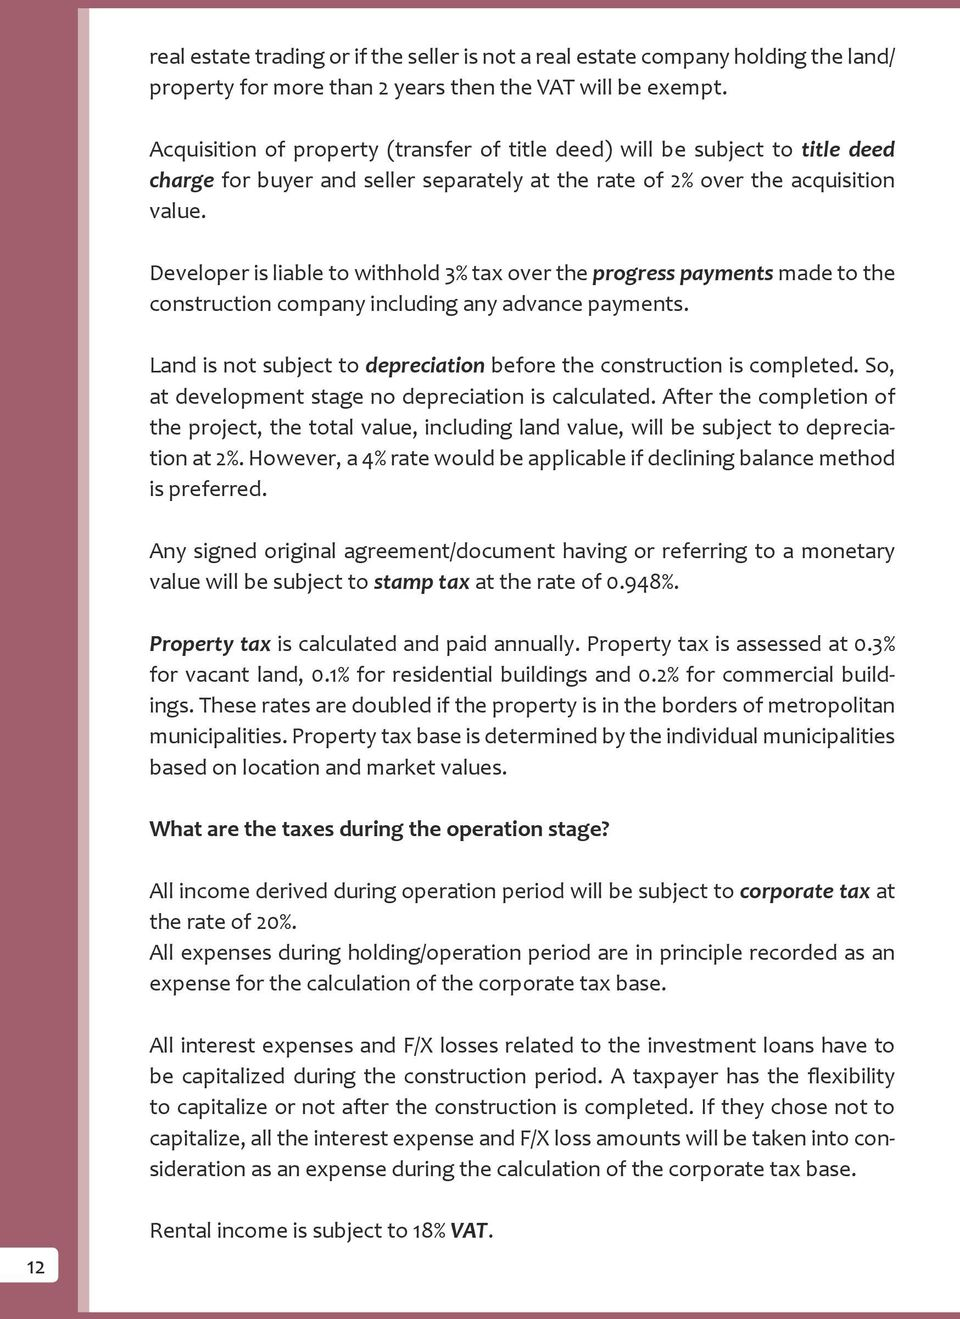 Developer is liable to withhold 3% tax over the progress payments made to the construction company including any advance payments.